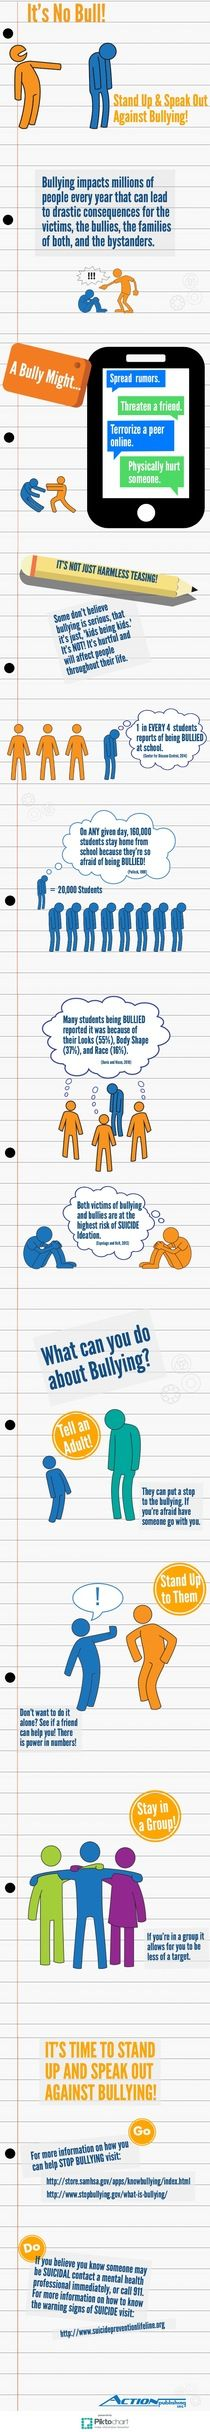 Stand Up Speak Out Against Bullying | Piktochart Infographic Editor